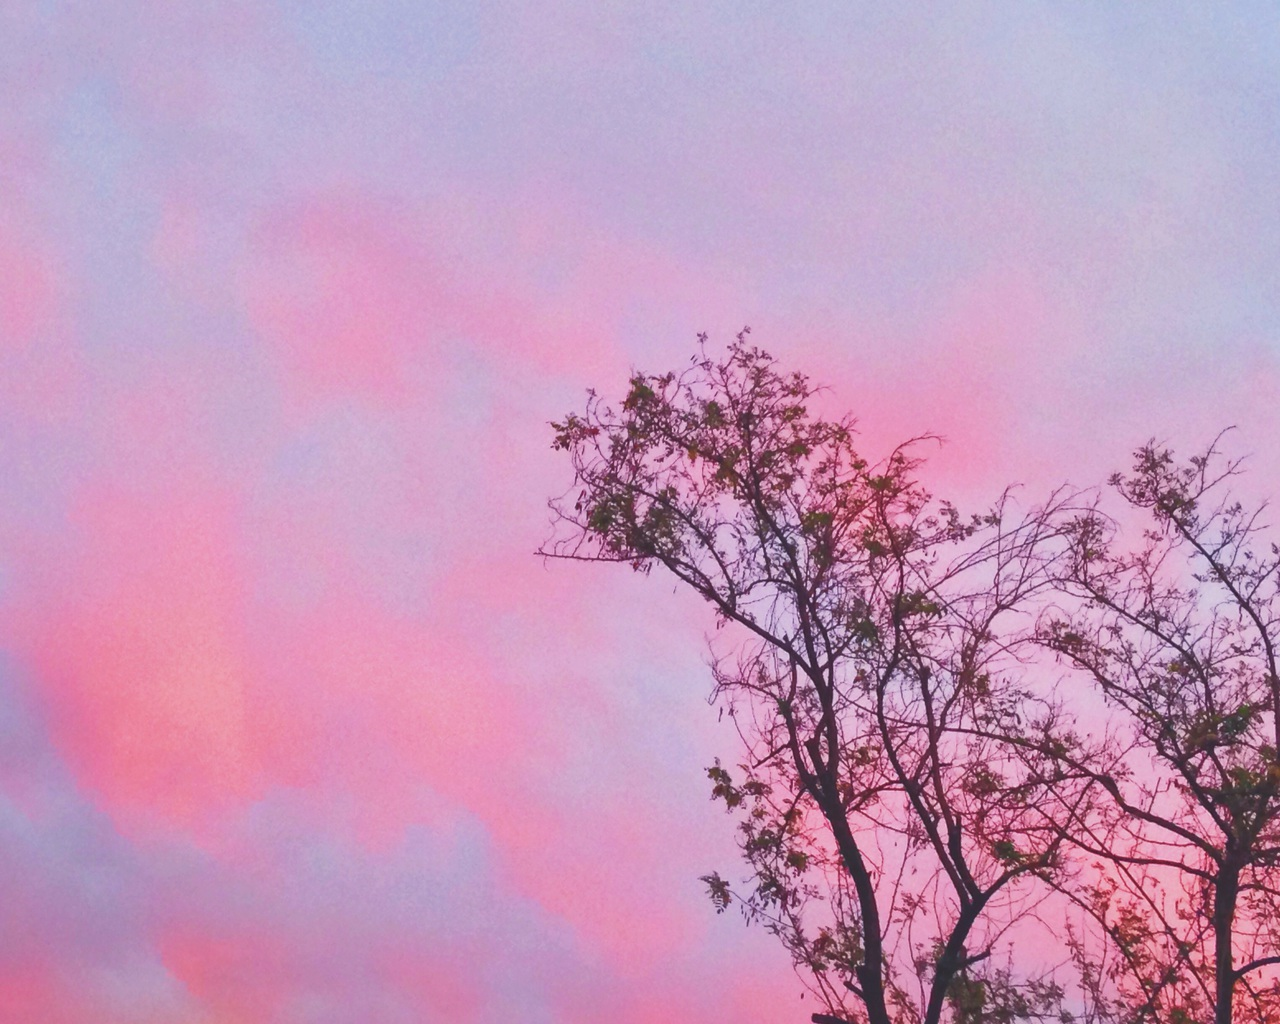 blue, chile, deeply, girly, love, nature, nice, nubes, photo, pink, santiago, sky, sun, sunset, tree, u, wallpaper, sinfiltro